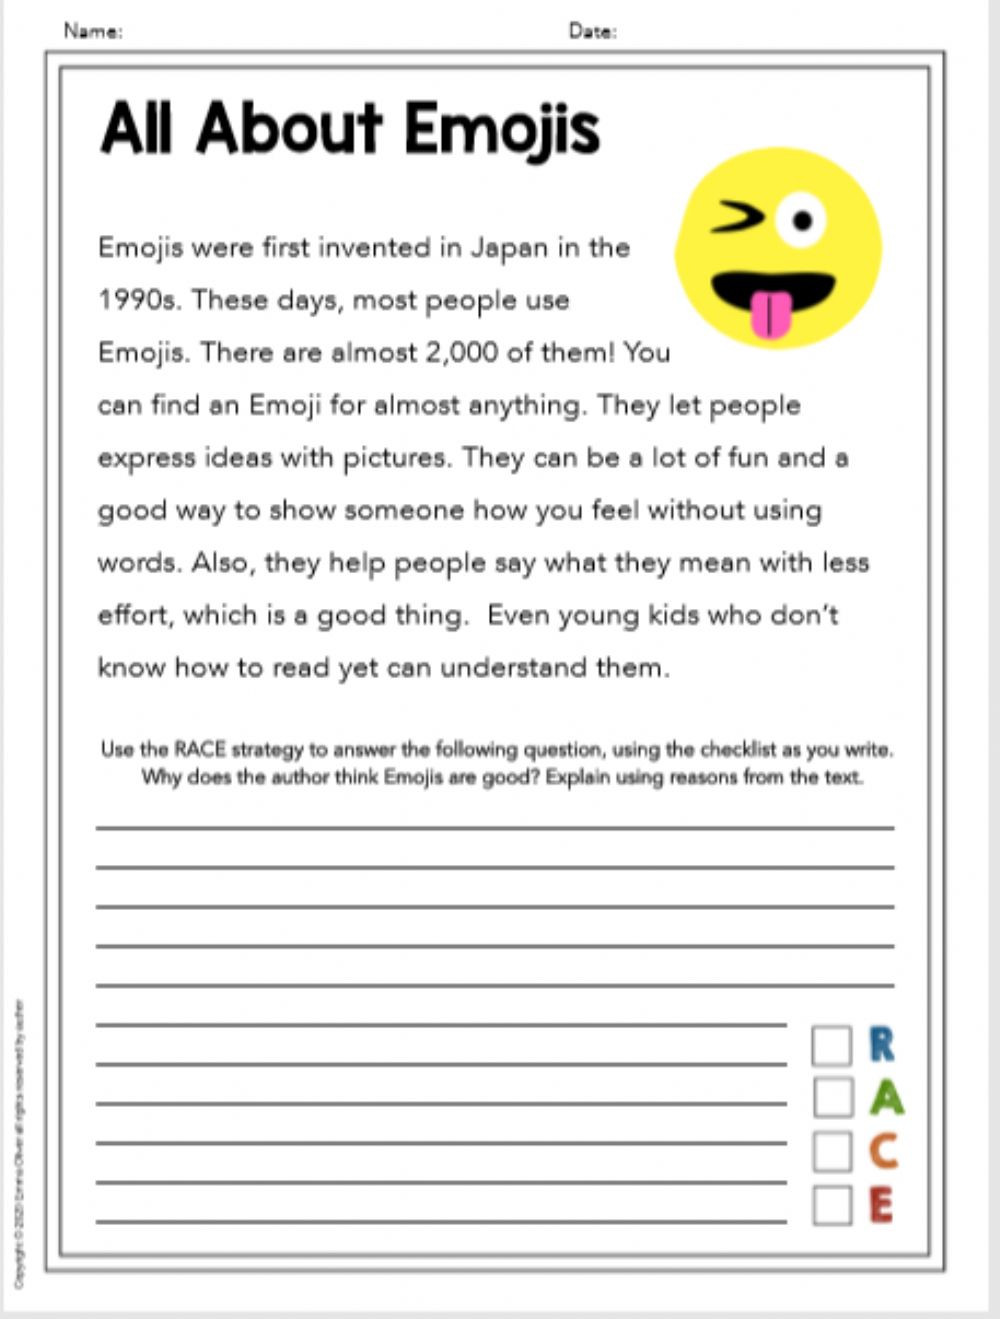 Race Writing Strategy Worksheets Race Writing Practice Emoji Interactive Worksheet